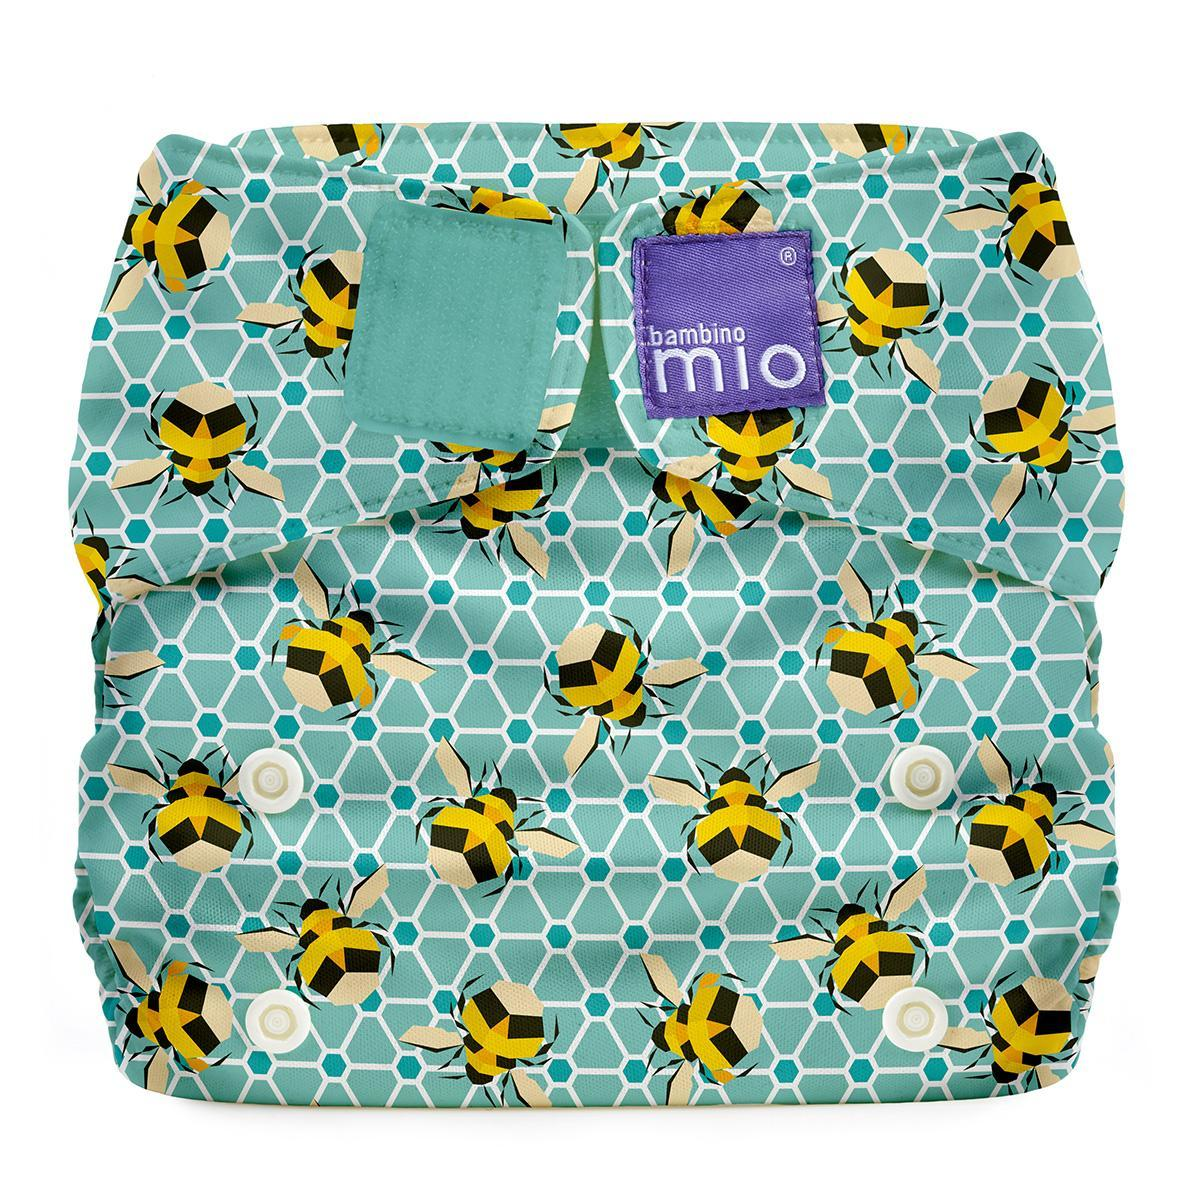 Bambino Mio: Miosolo All-in-One Nappy - Bumble image